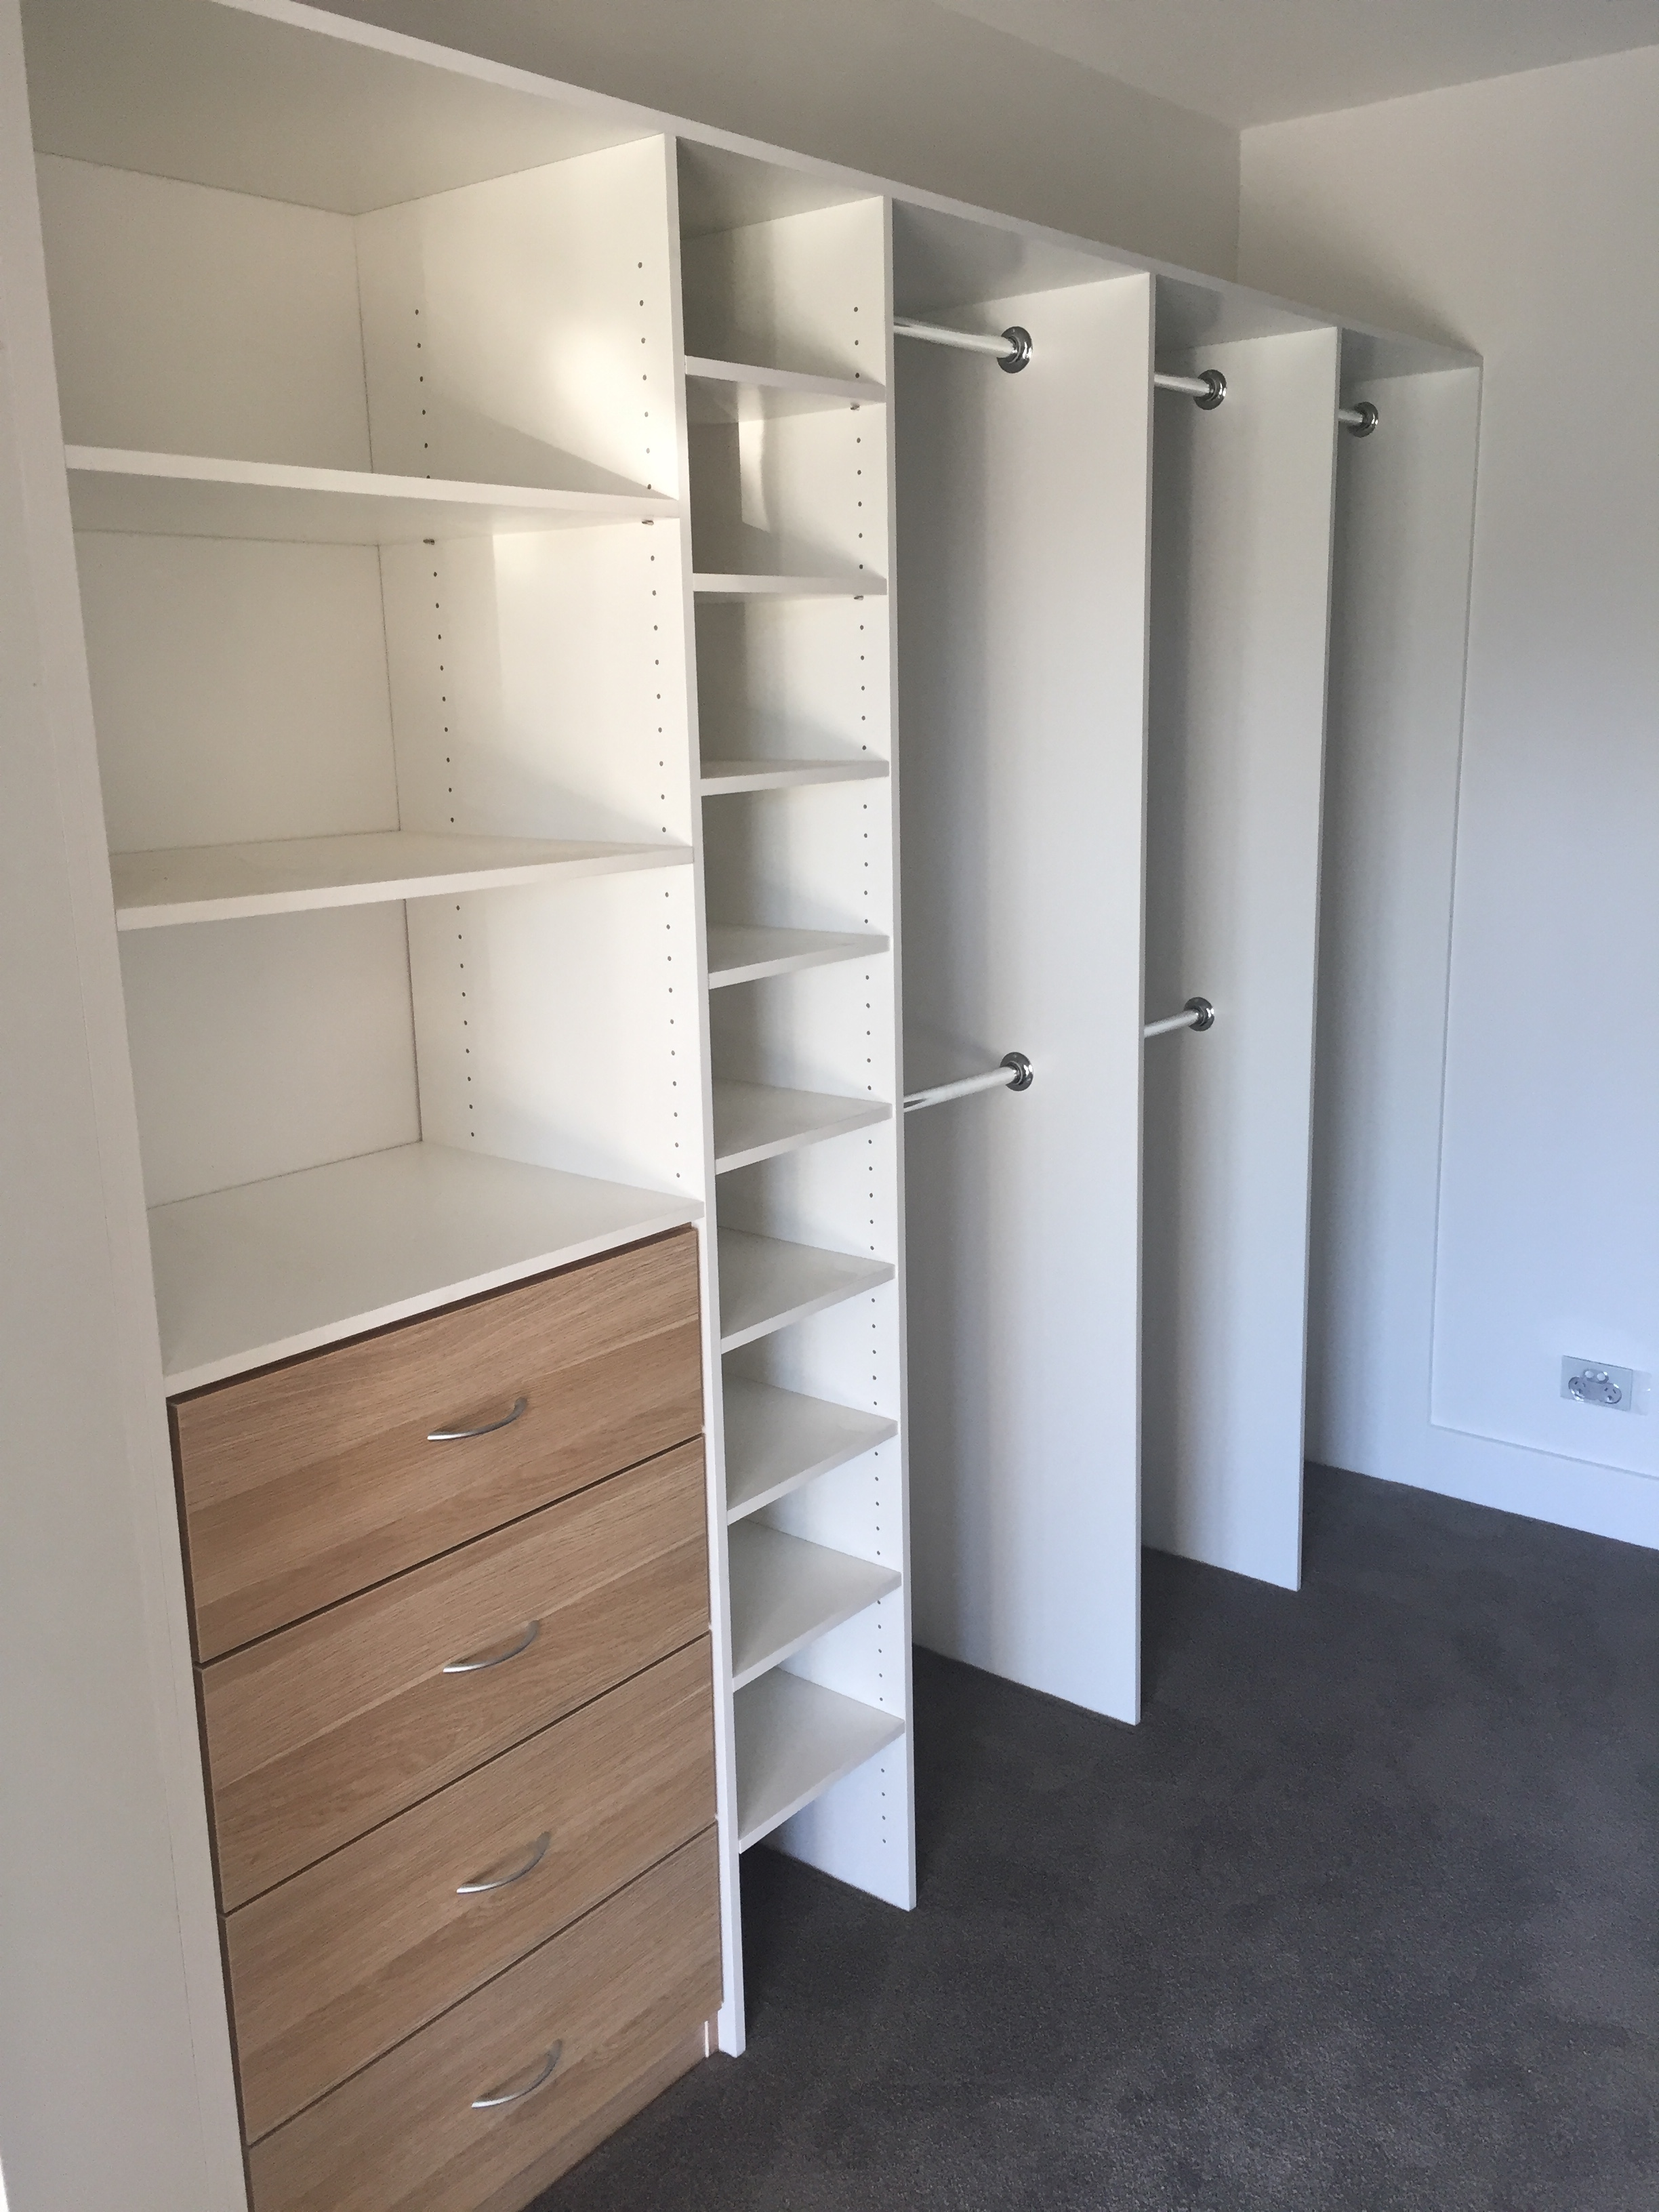 Walk In Wardrobes And Internals Built In Wardrobes Sydney And Shower Screens Sydney